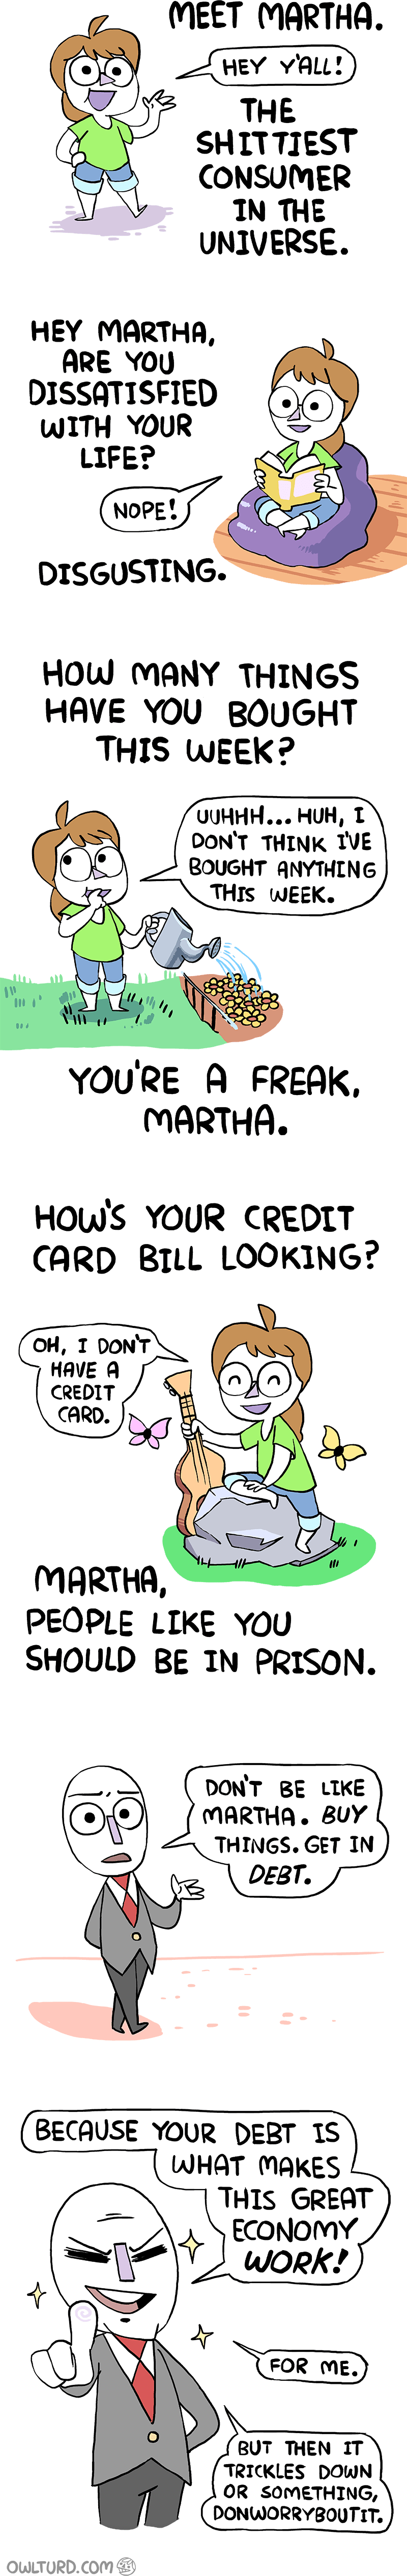 finances debt web comics - 8758959360